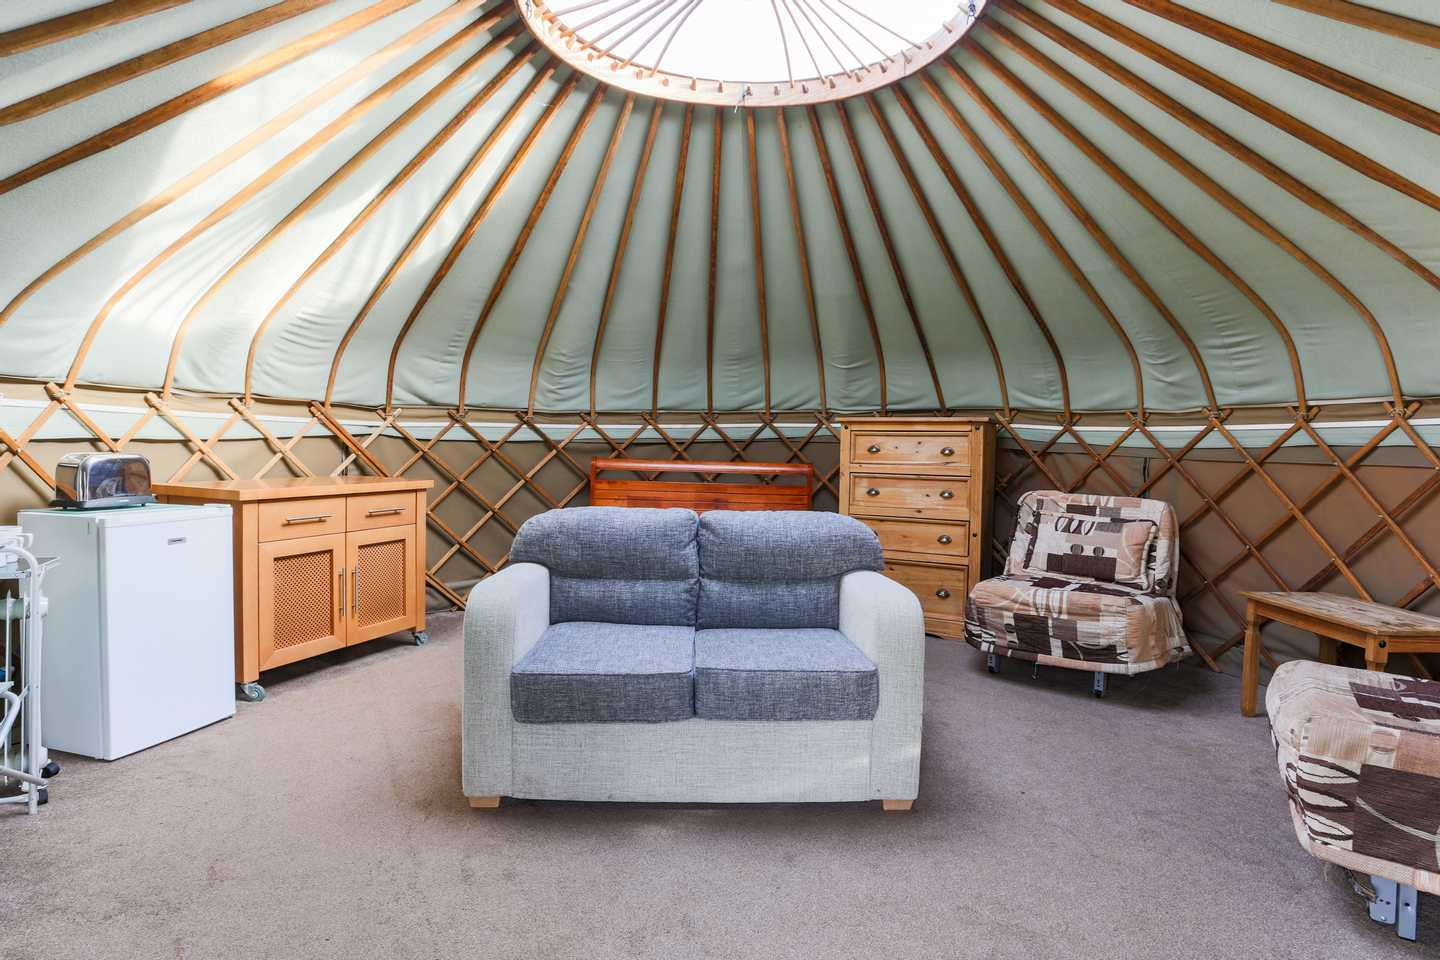 The interior of a Yurt